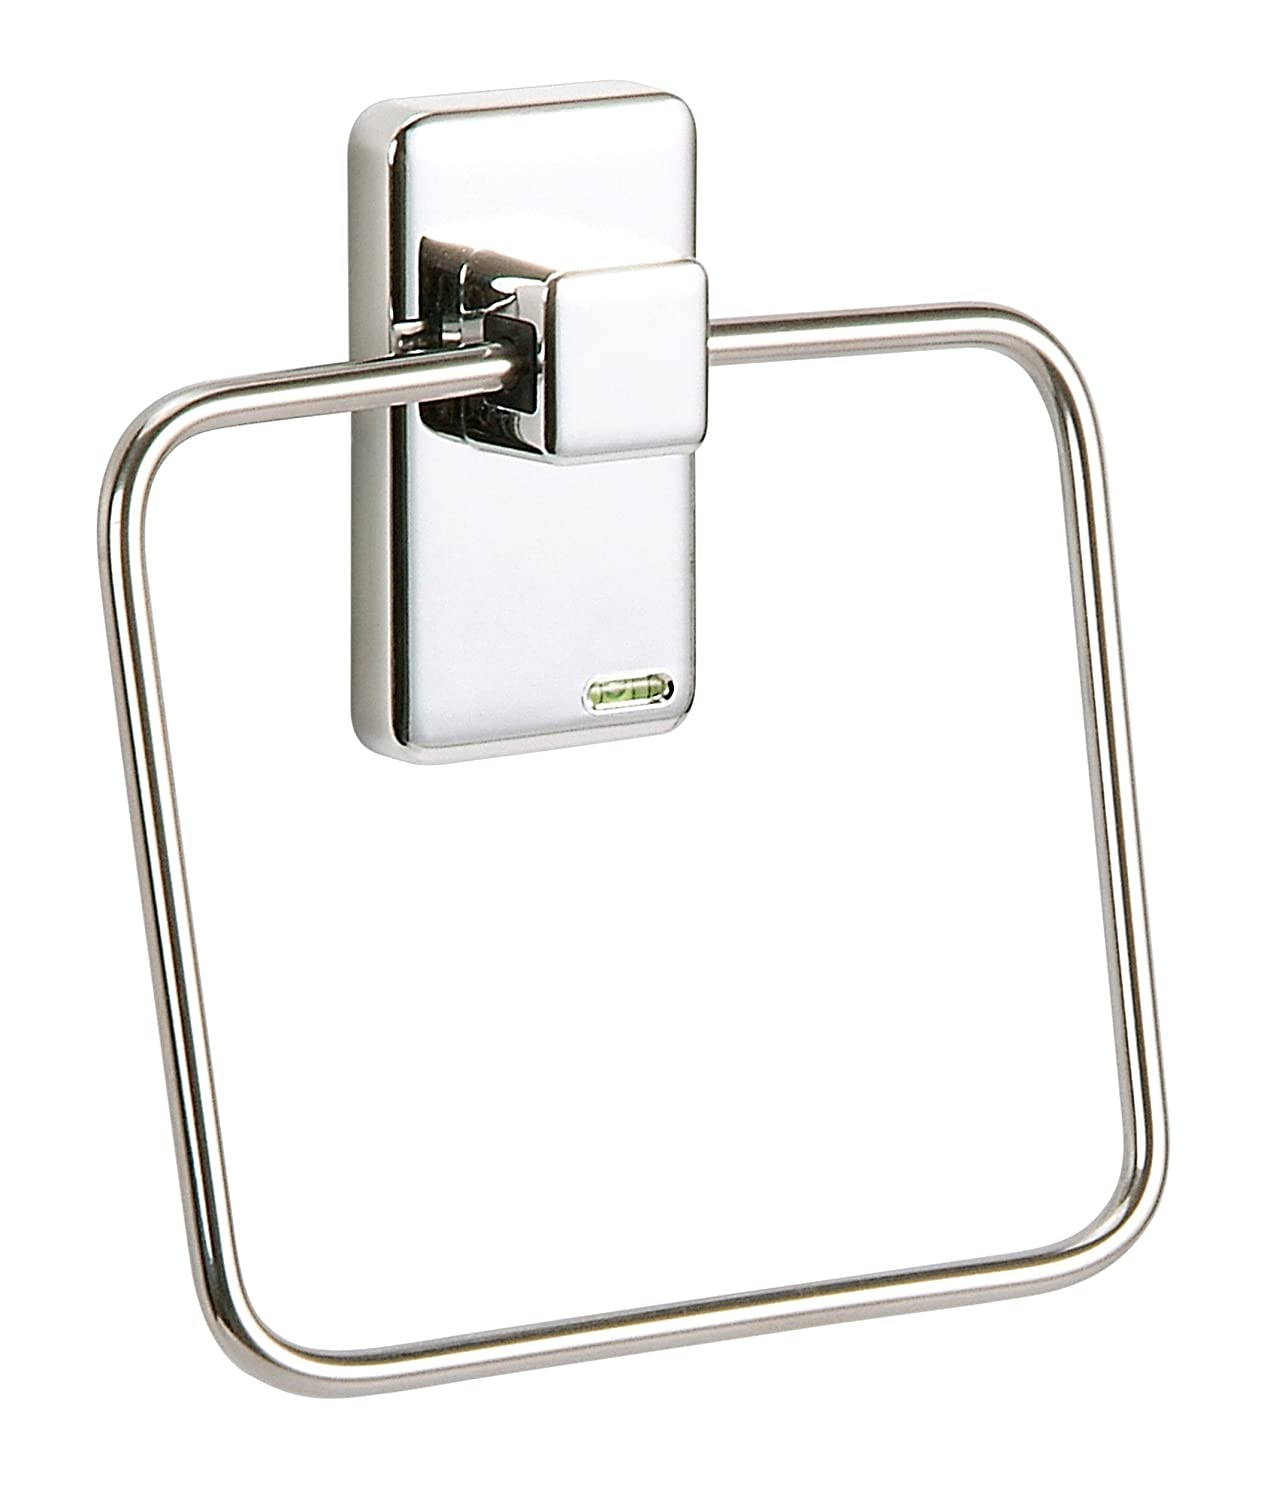 Chrome Square Towel Ring Holder Hanger 14cm - Wall Mounted 3M-Adhasive Backing Ideal Bath